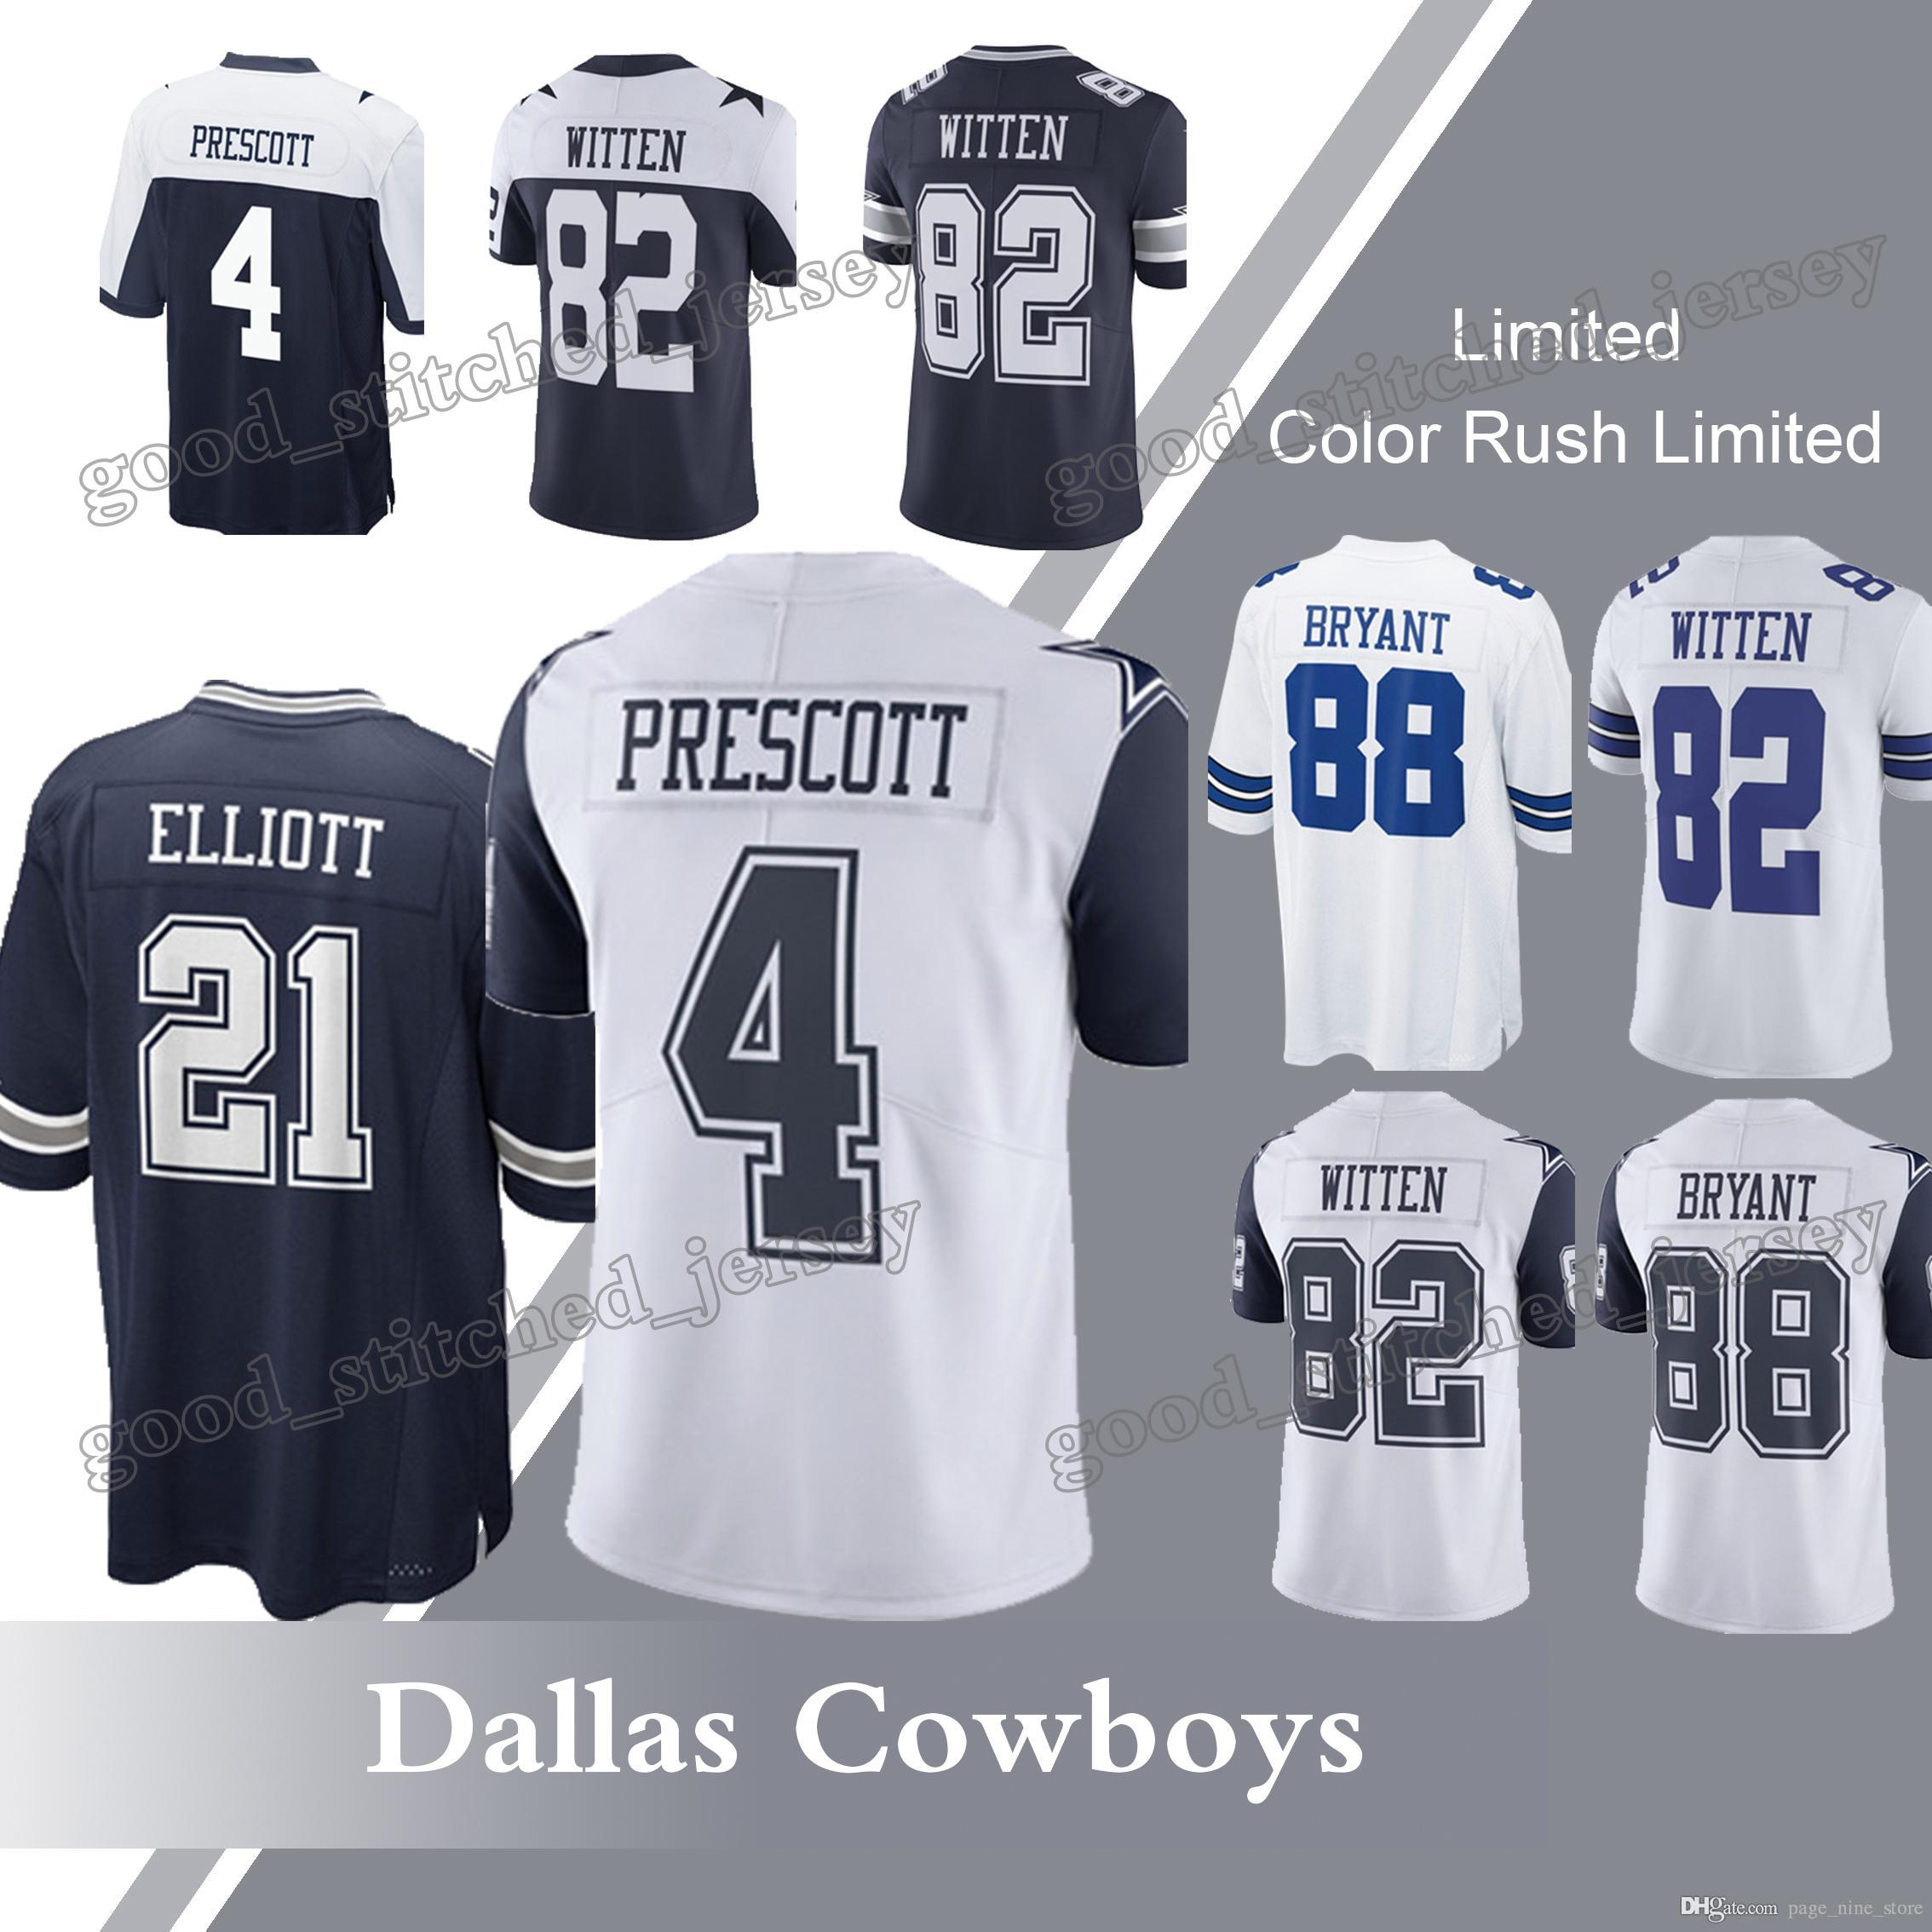 92bf57365 ... coupon code for 2018 dallas cowboys jerseys 55 leighton vander esch 4  dak prescott 21 ezekiel